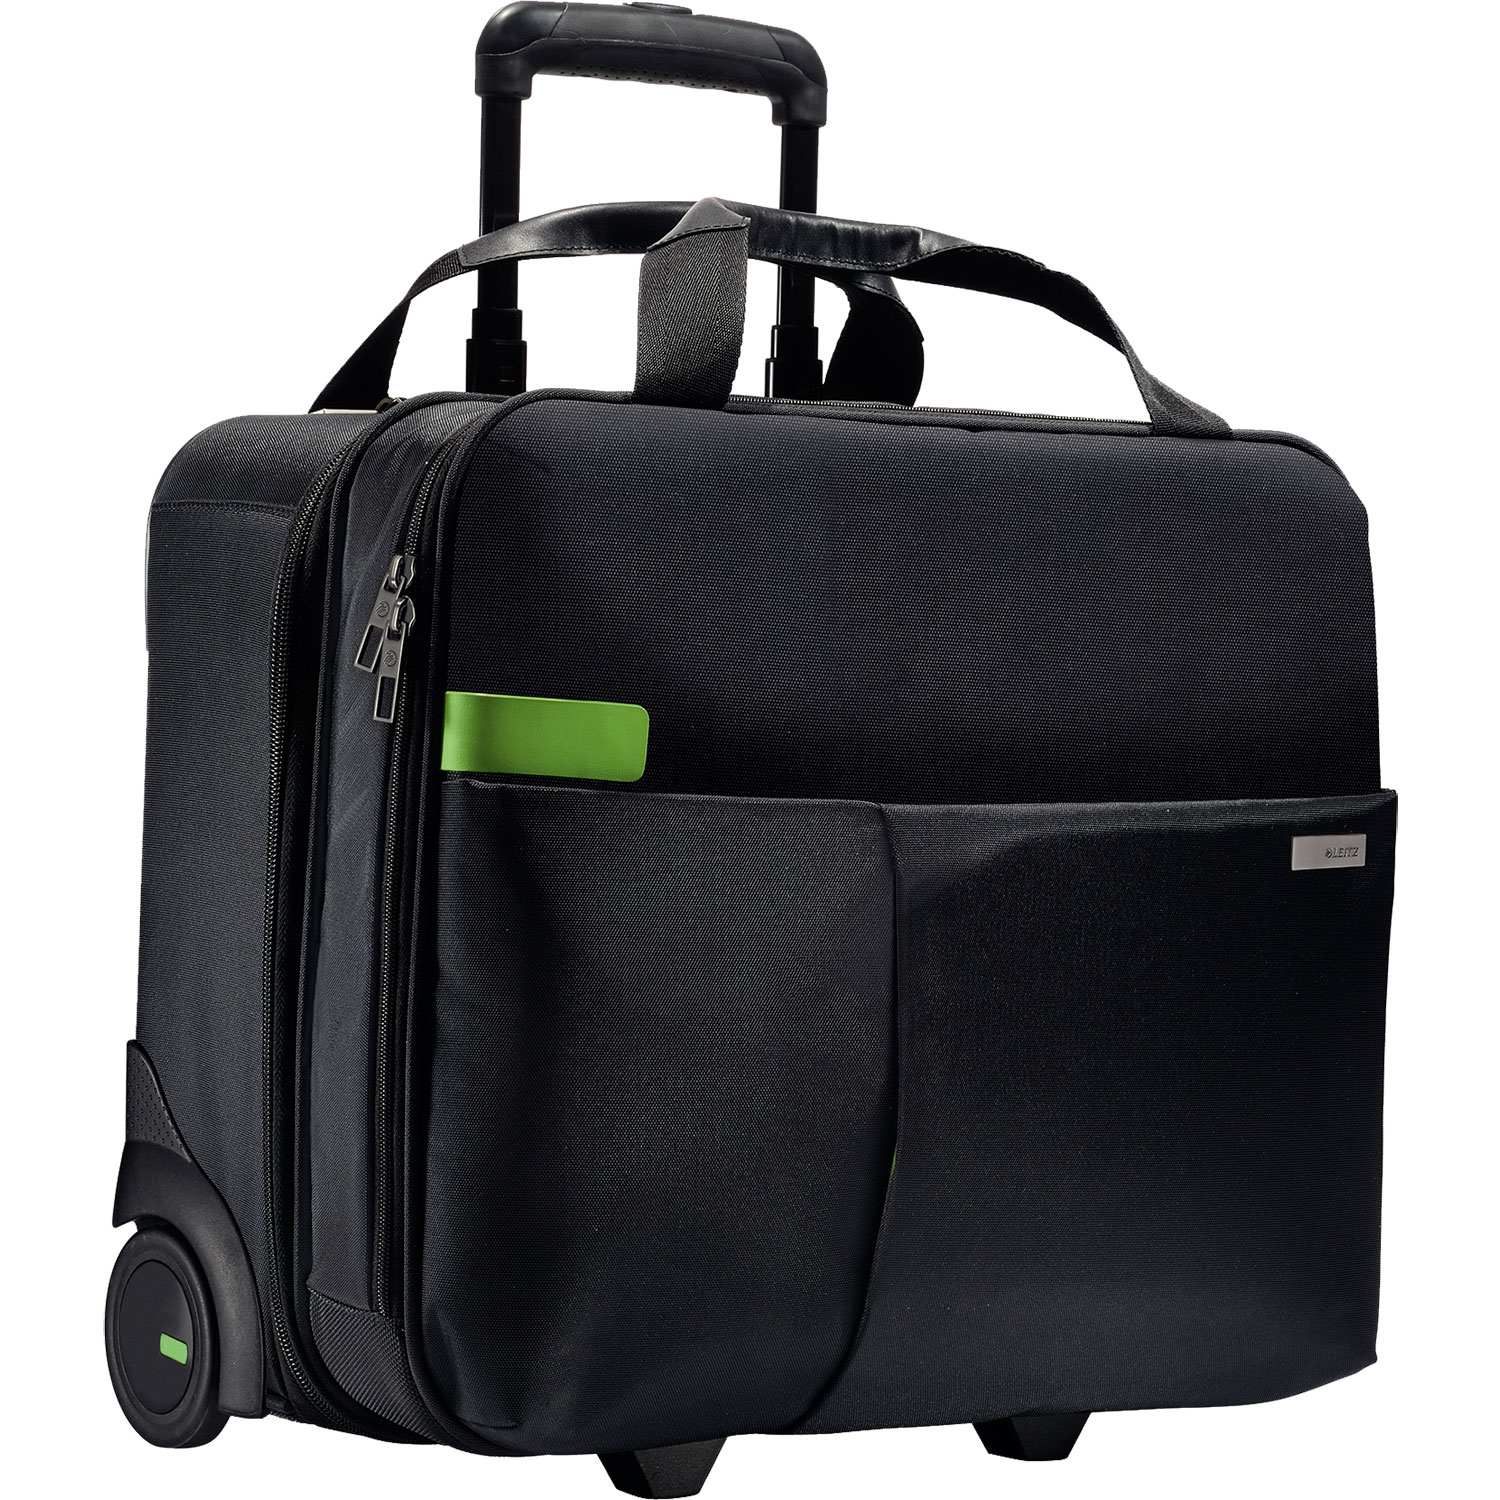 Leitz Complete Smart Traveller Trolley Bag